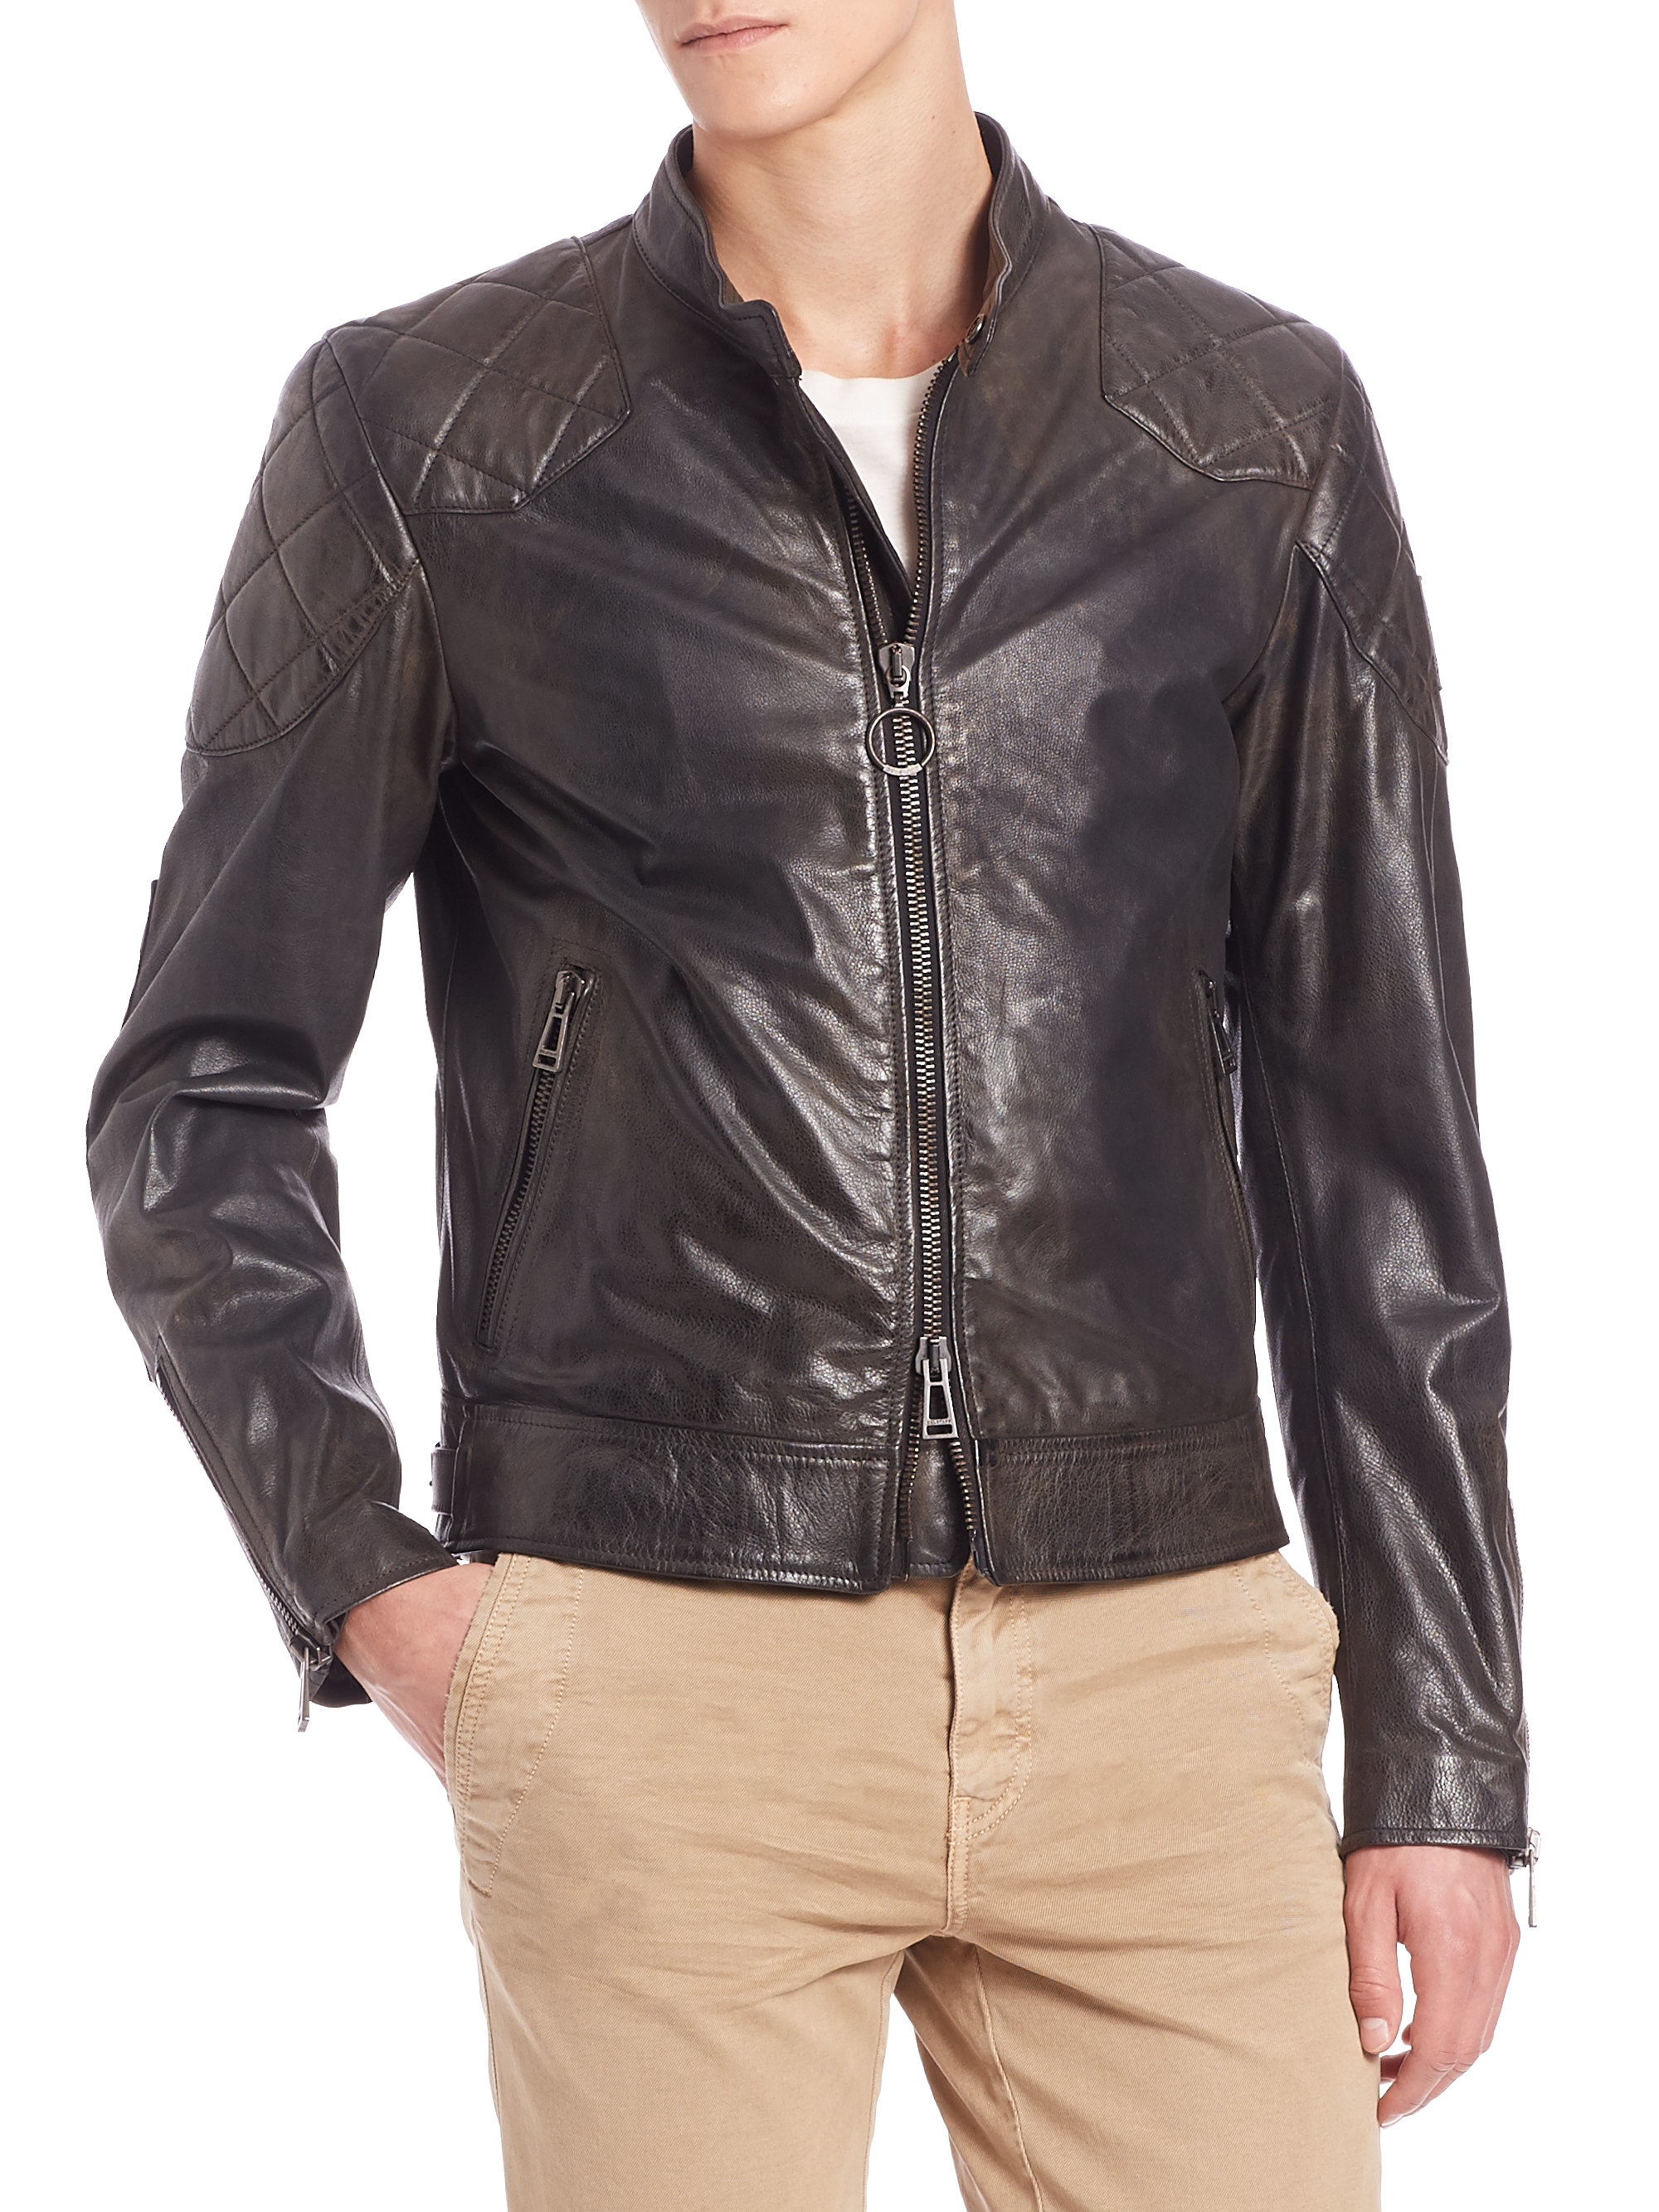 We just sale High Qualtiy Belstaff Jackets for mens and womens, cheapest price and fast free shipping over 2 pcs.